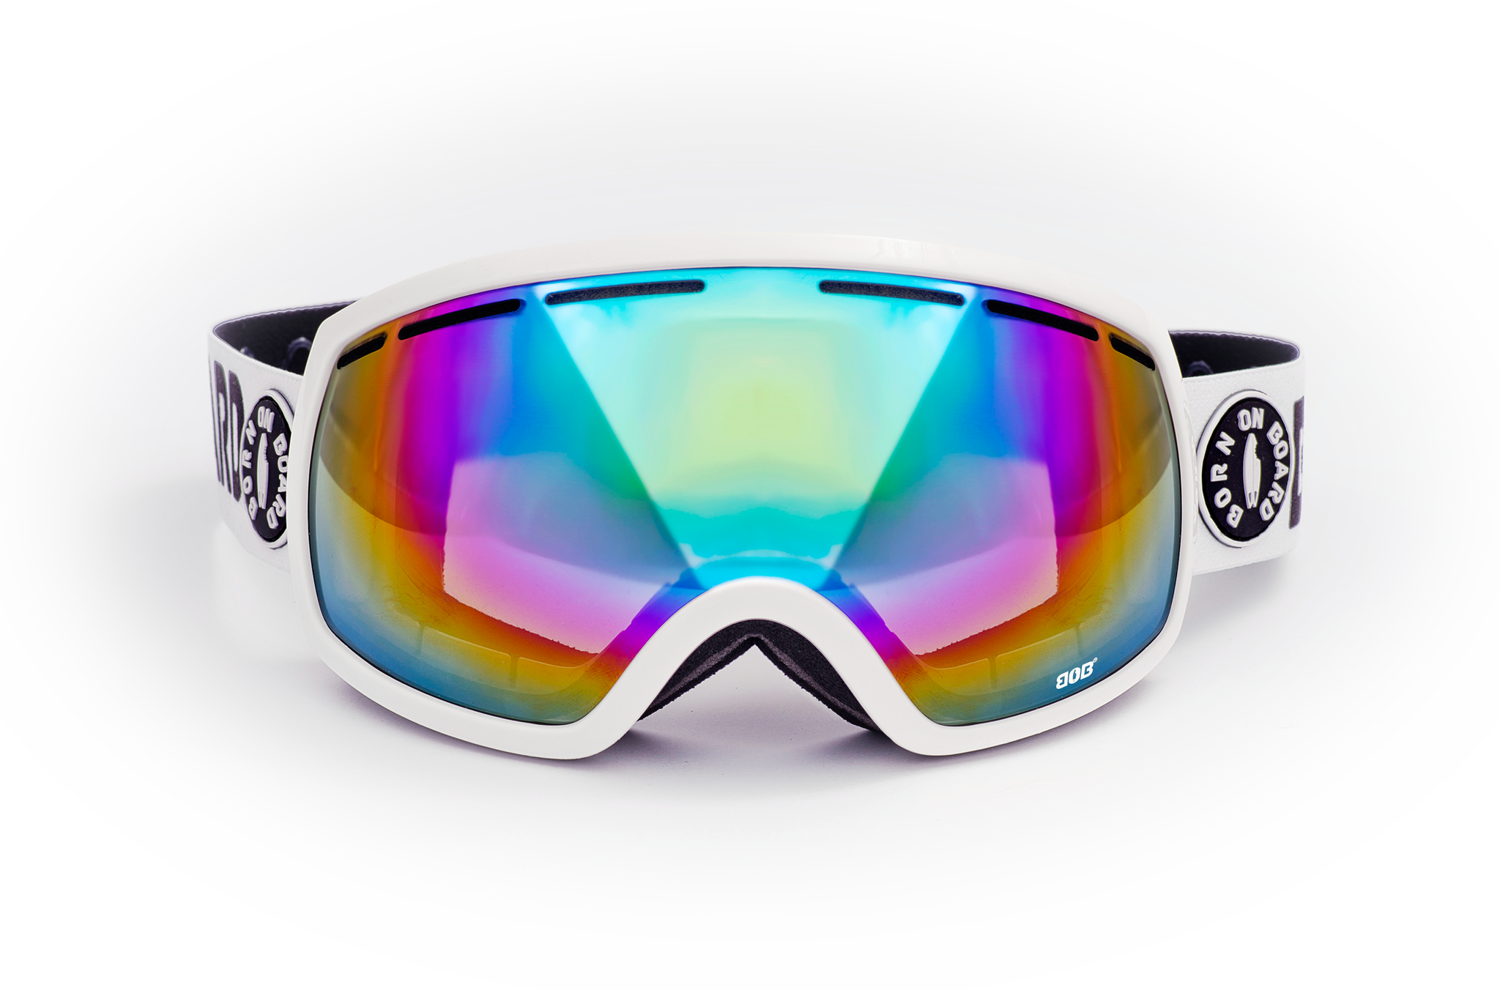 2f6b3a2534 Snowboard Goggles Born On Board Hot Planet Ski Goggles - Winter ...